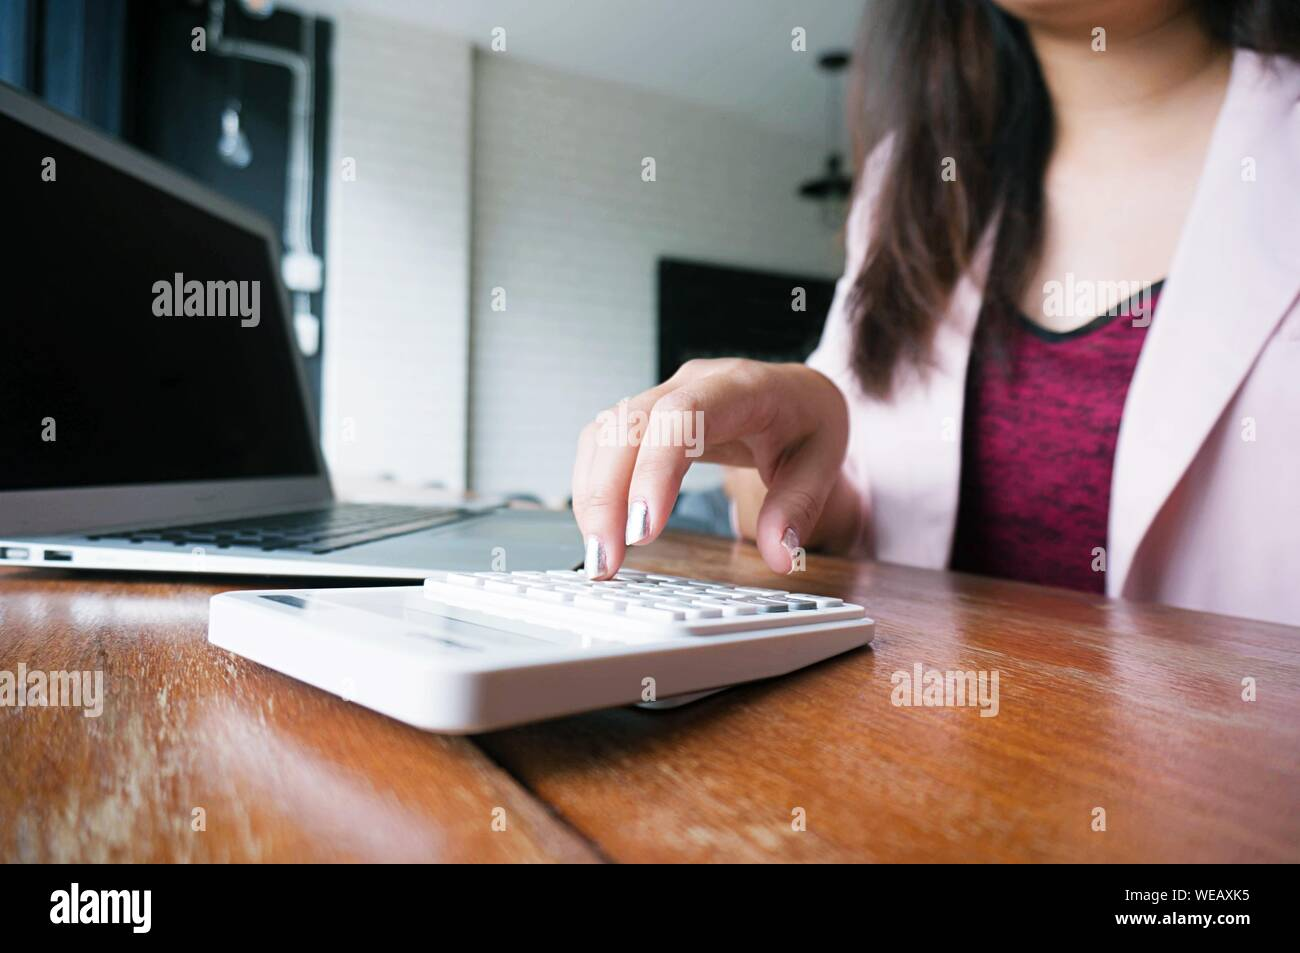 Midsection Of Businesswoman Using Calculator By Laptop While Working In Office Stock Photo